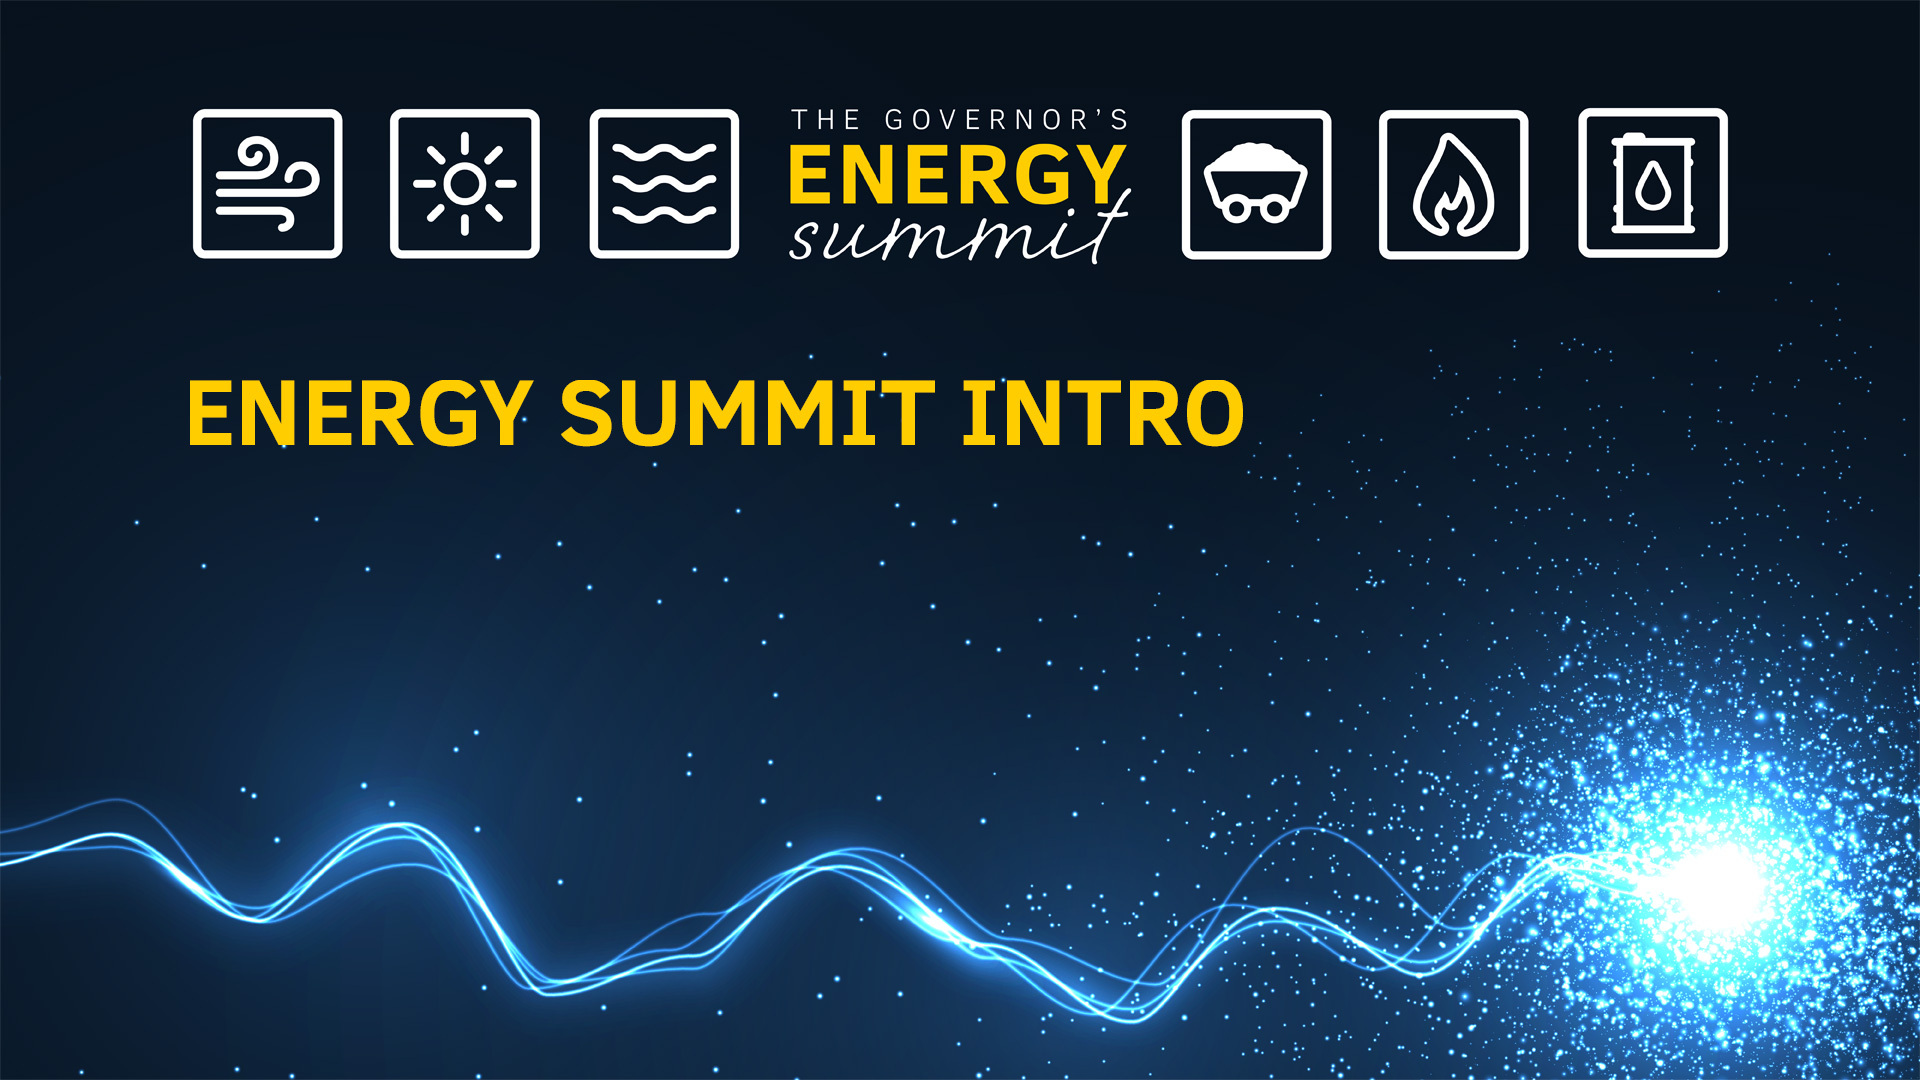 Energy Summit Intro